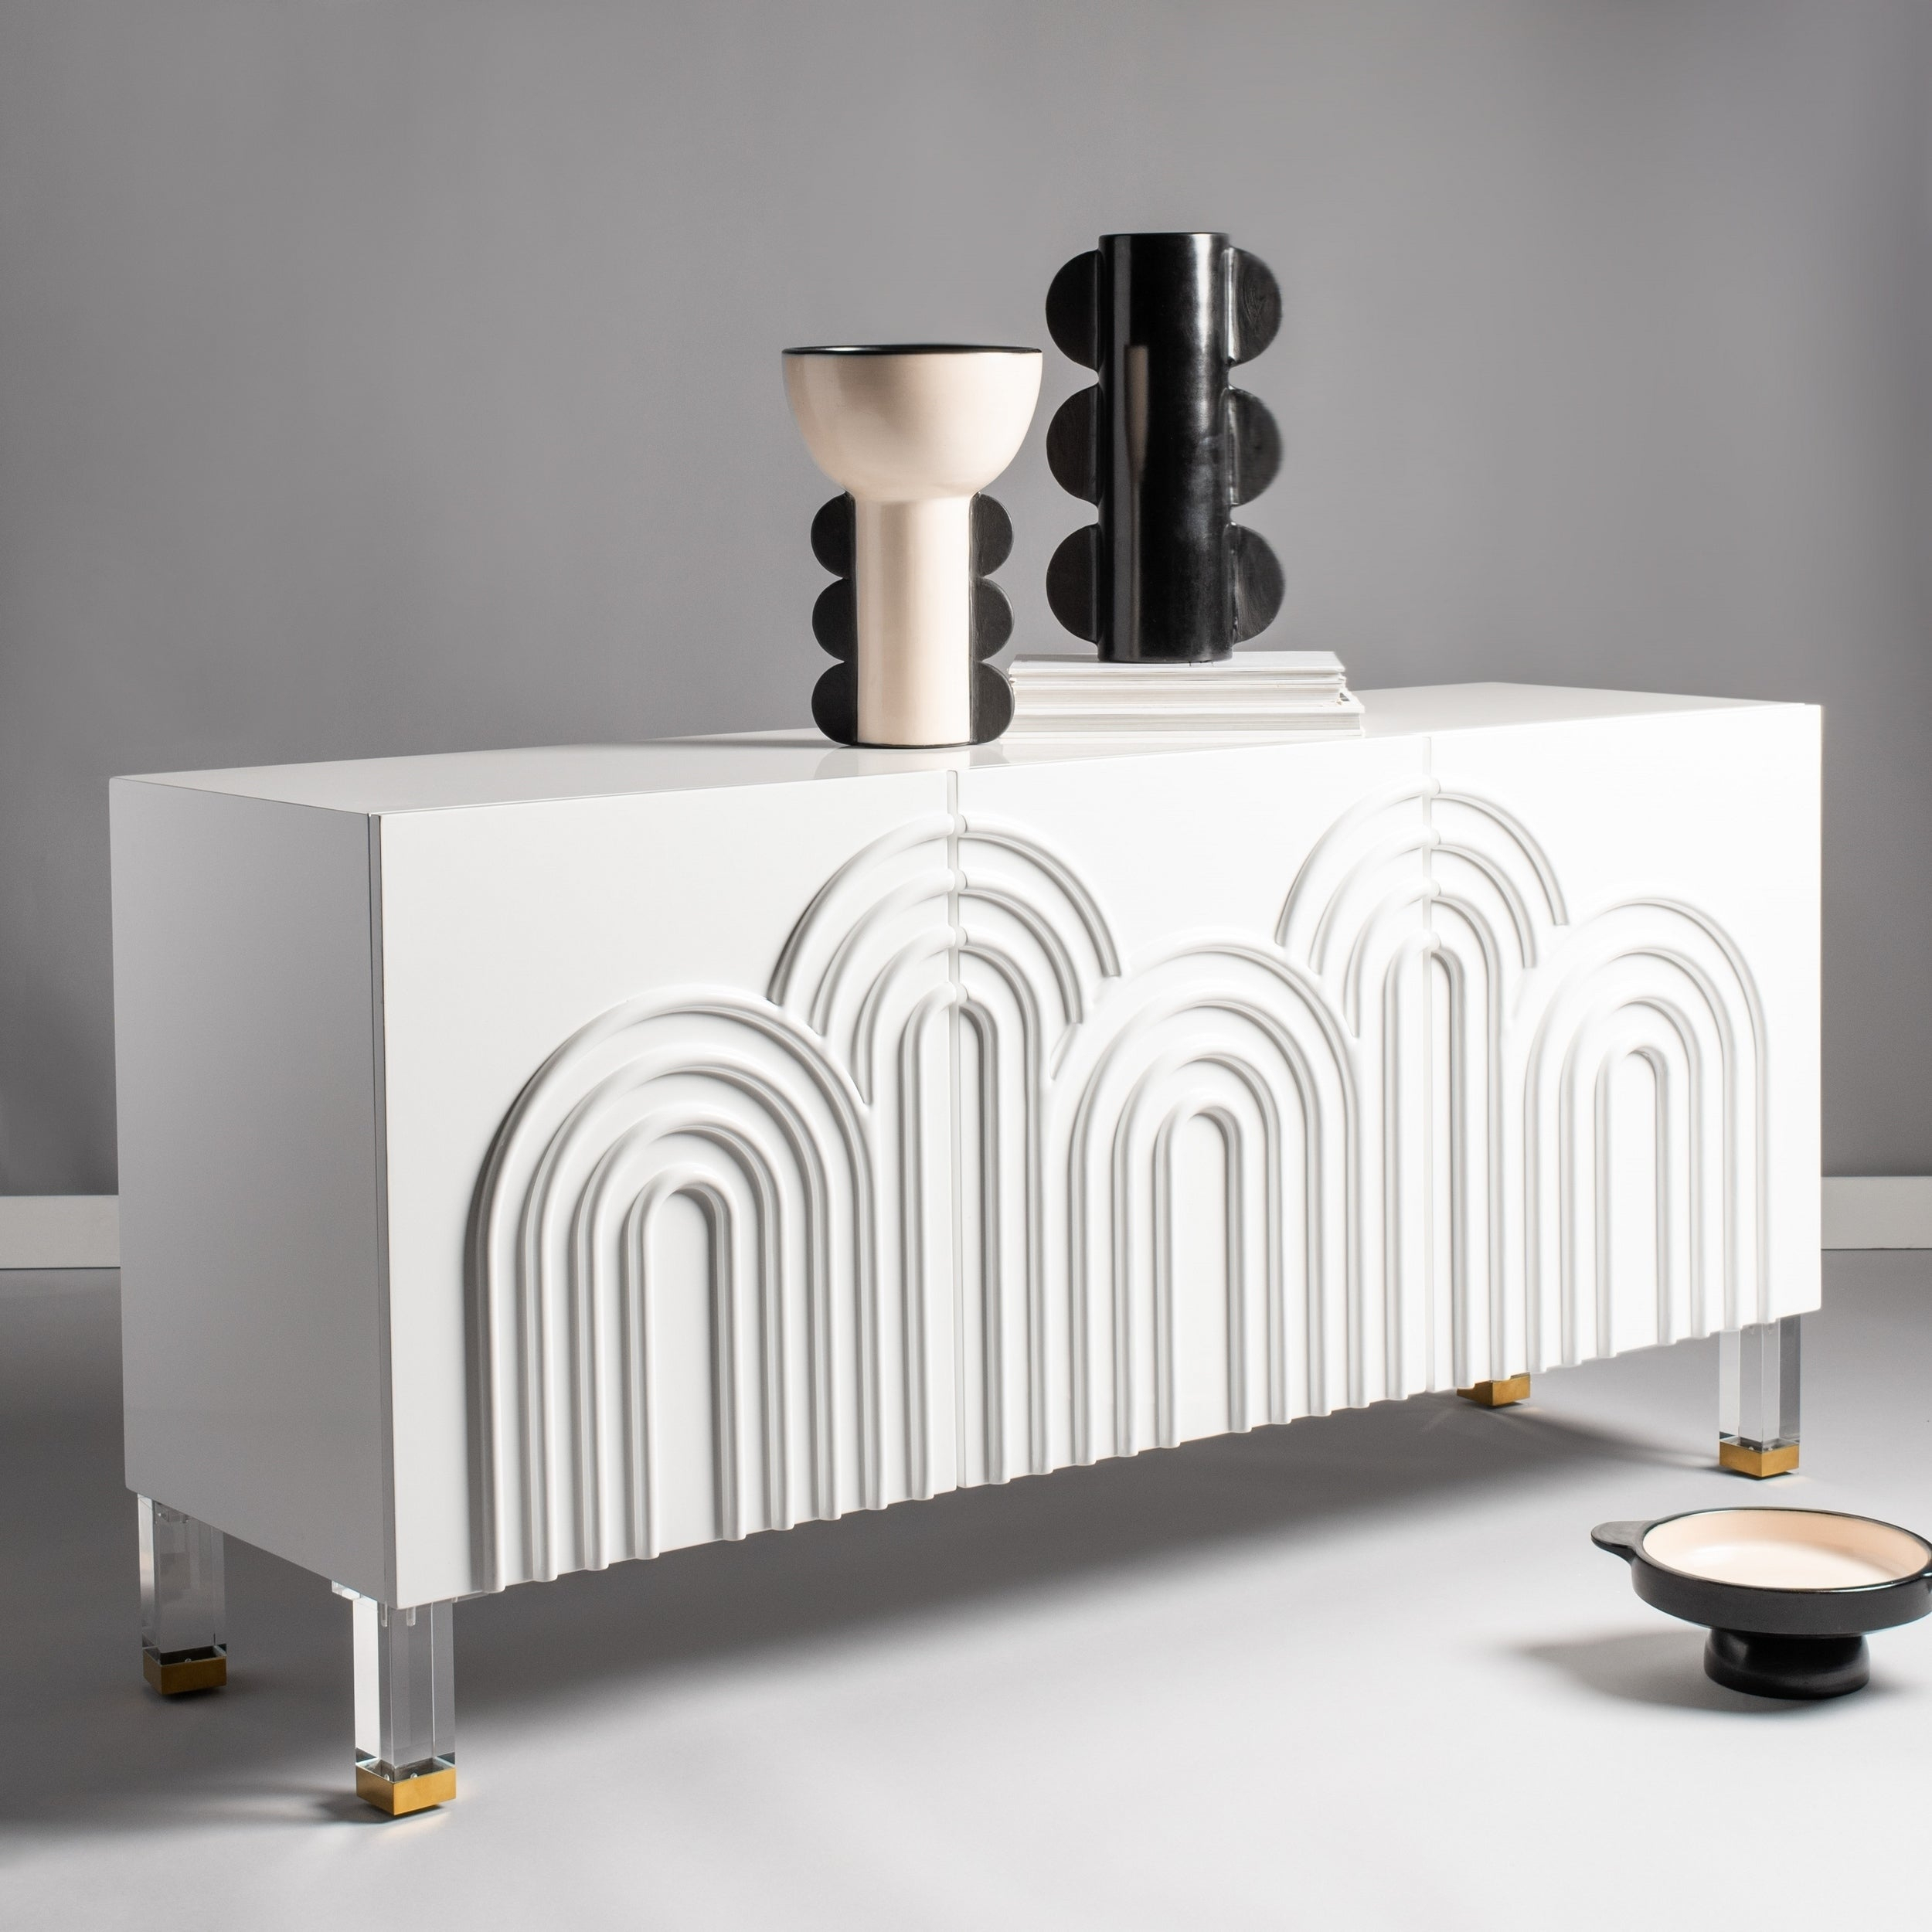 Safavieh Couture Saturn Wave Acrylic Sideboard In Emmaline Sideboards (View 15 of 30)